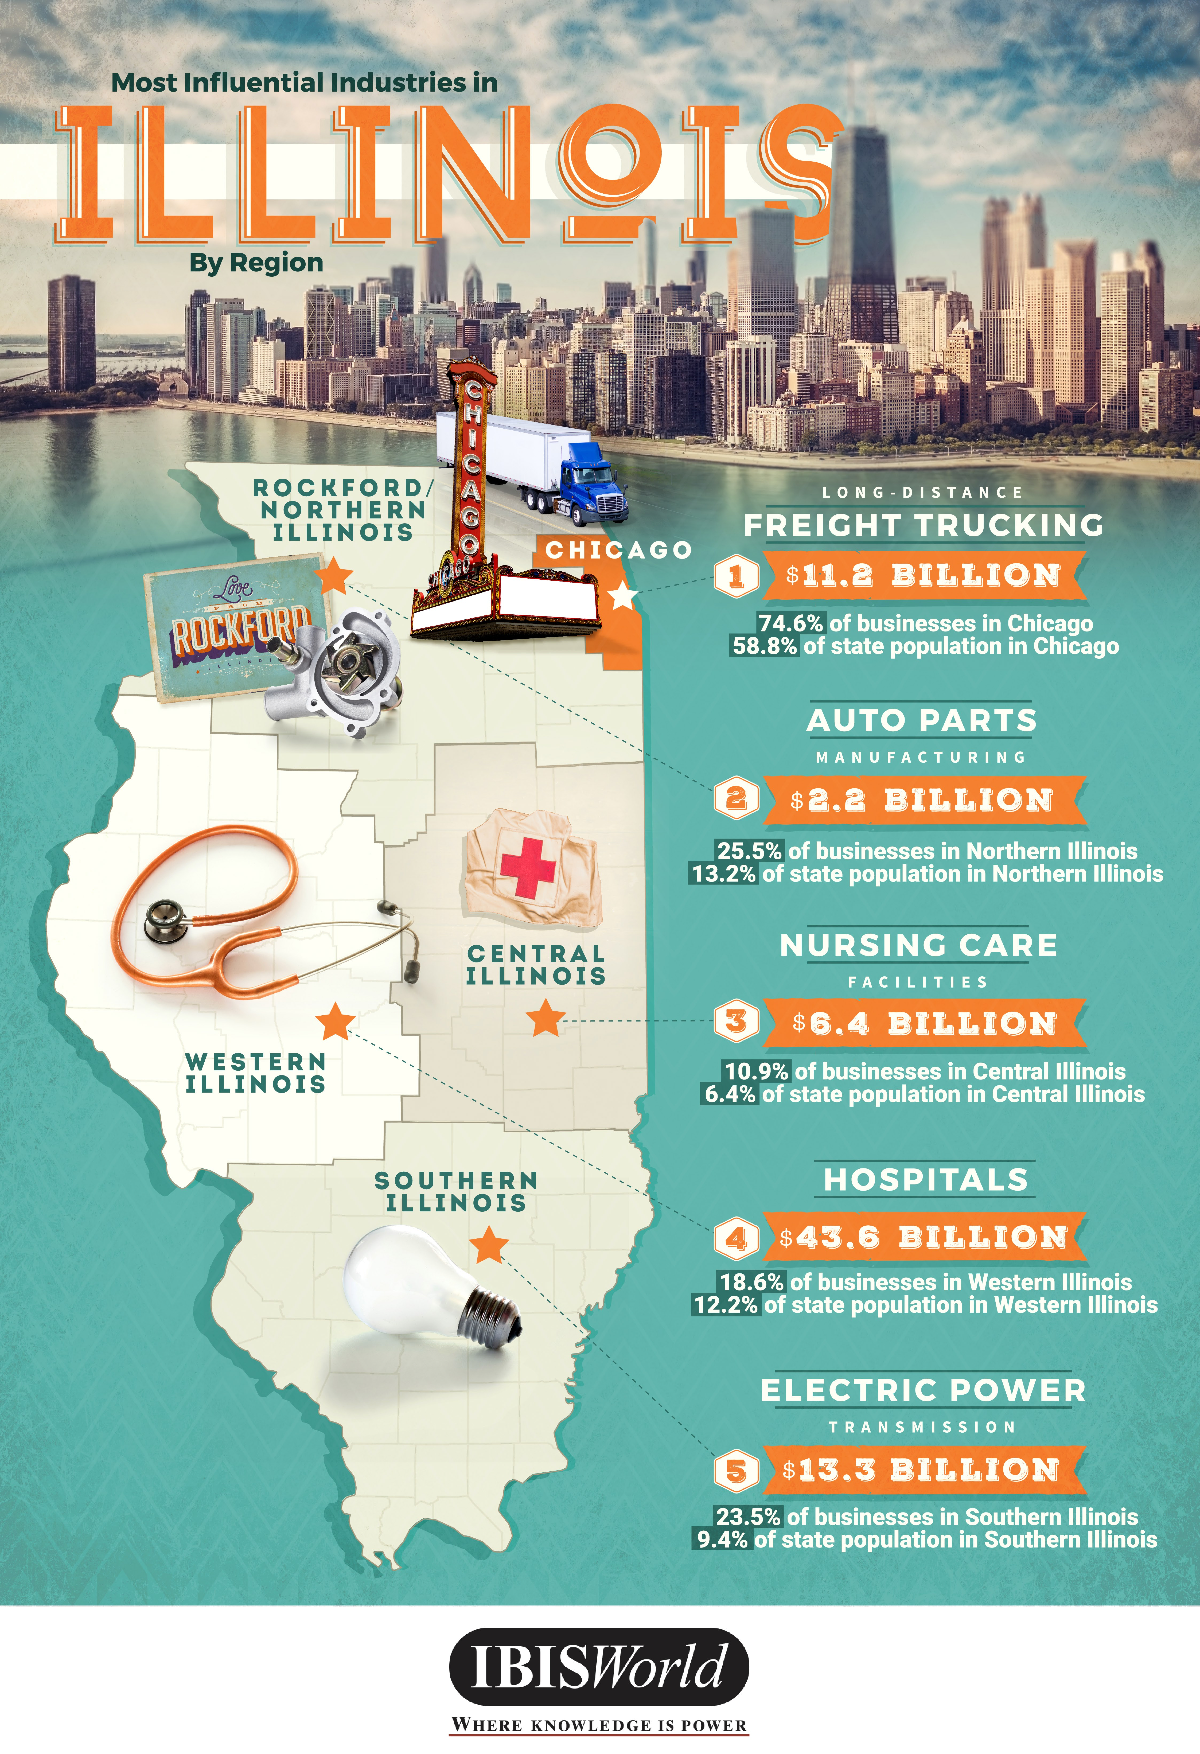 Most Influential Industries in Illinois by Region